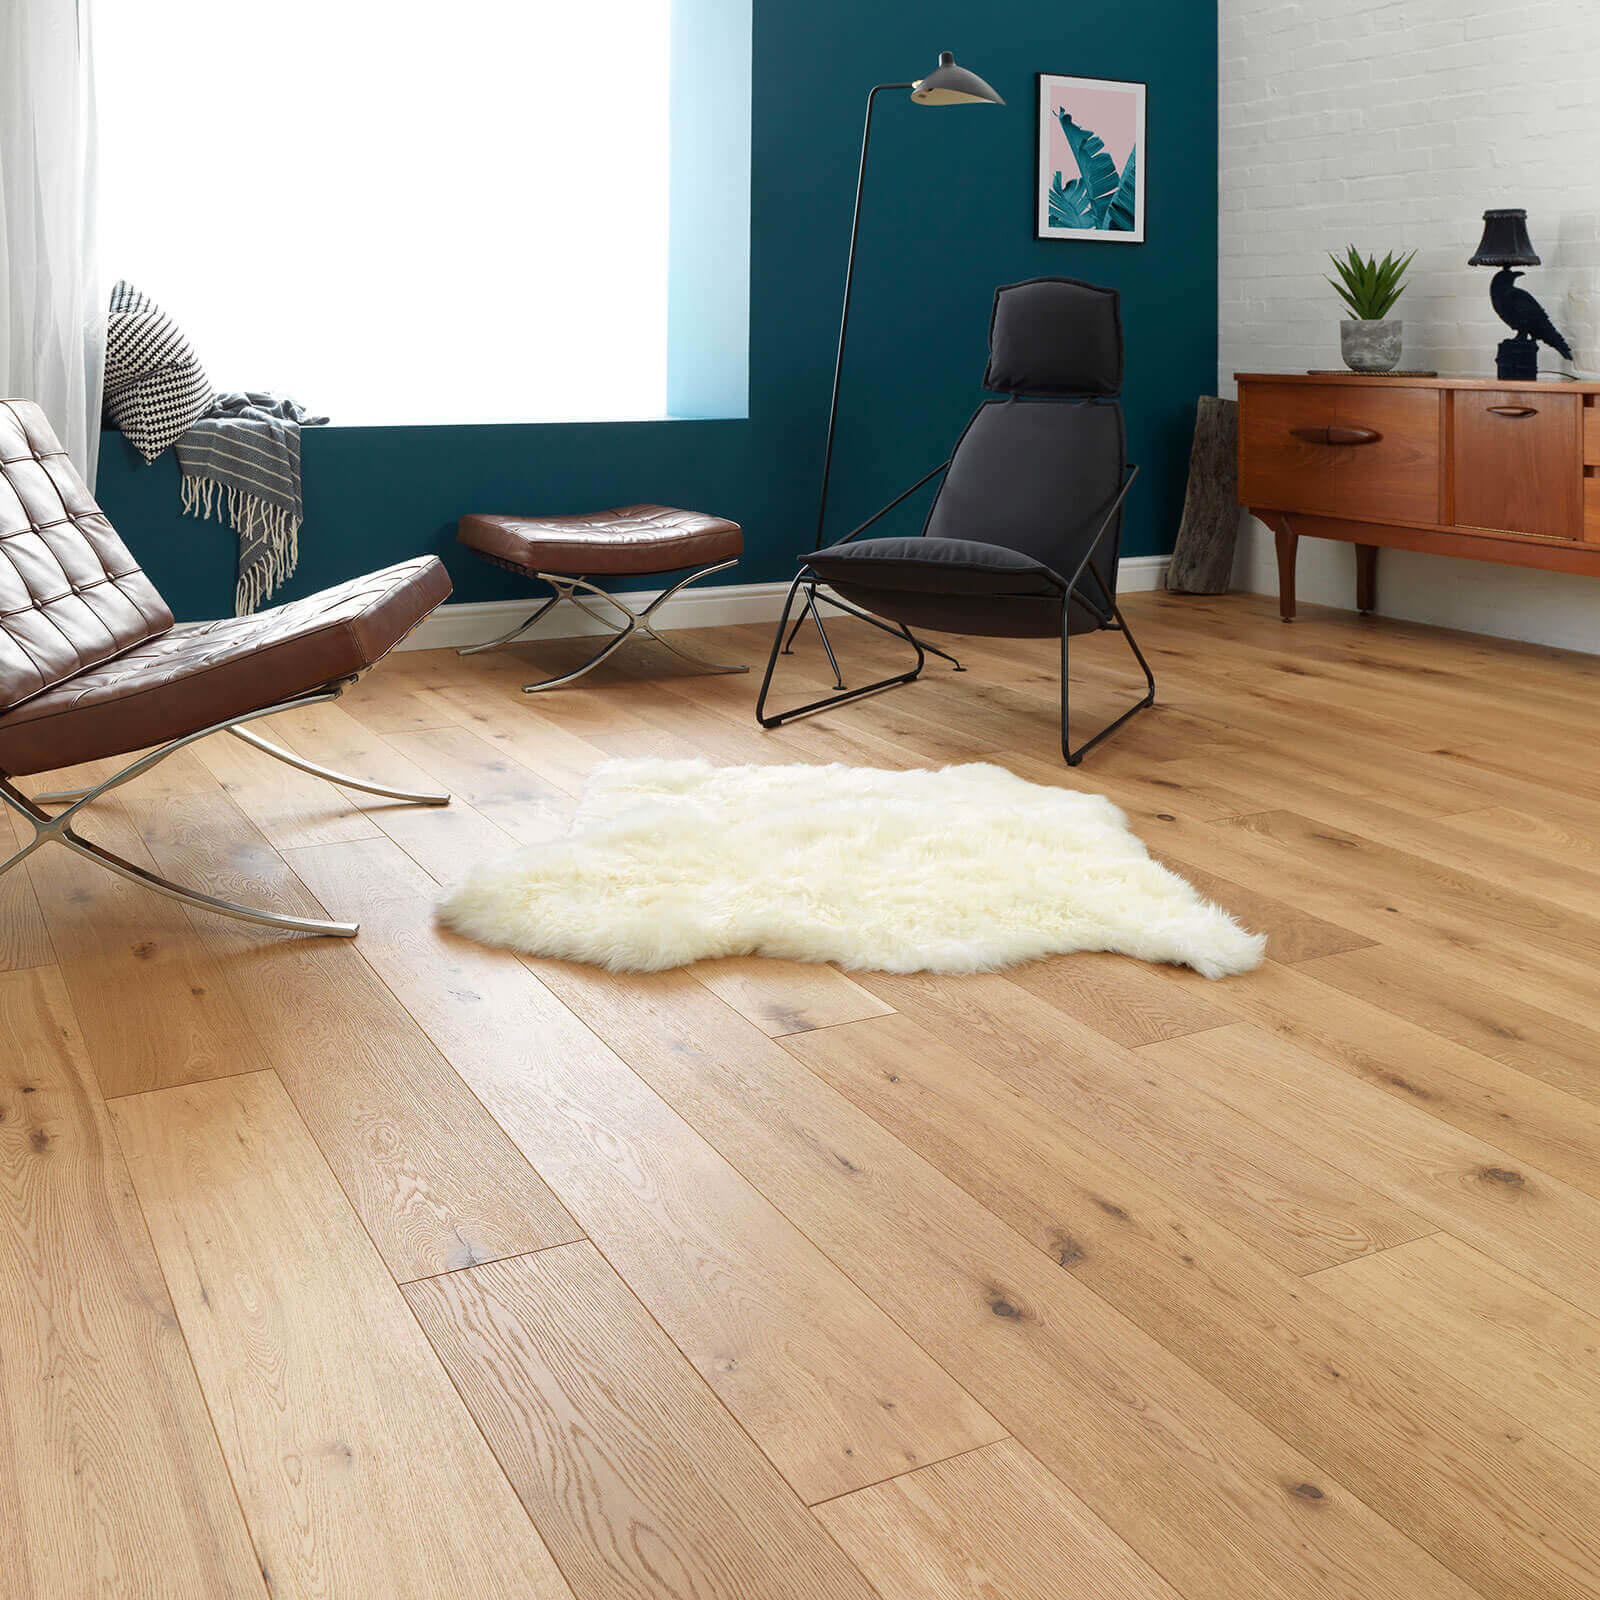 Woodpecker Chepstow Rustic Oak Unfinished Engineered Wood Flooring 189mm 65-HMU-001